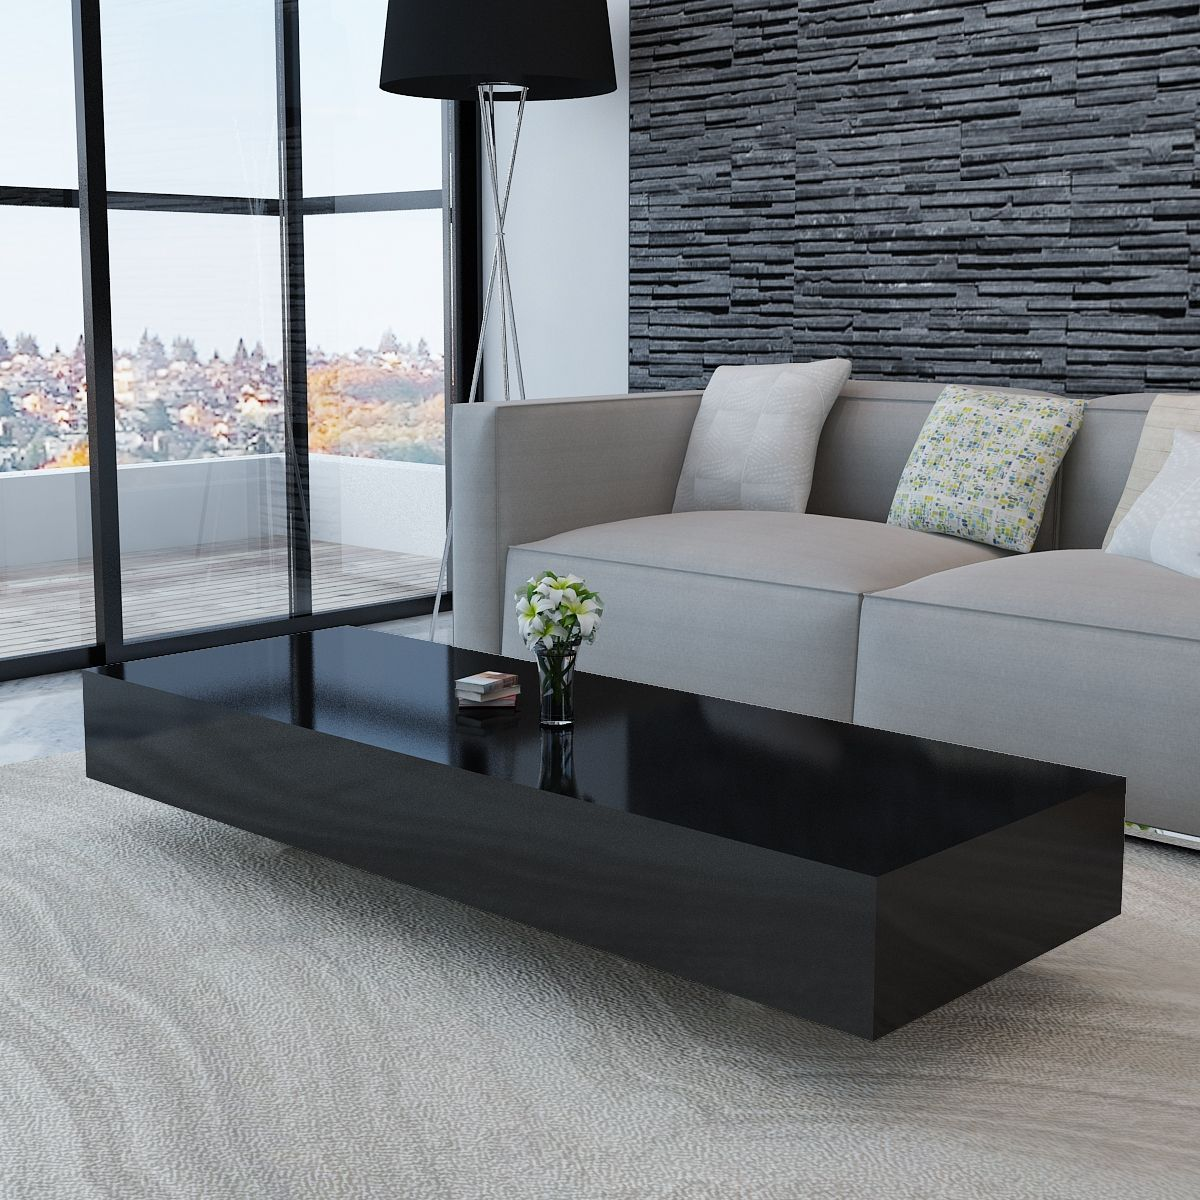 Vidaxl Couchtisch New Coffee Table Modern Furniture Side Table Mdf High ...